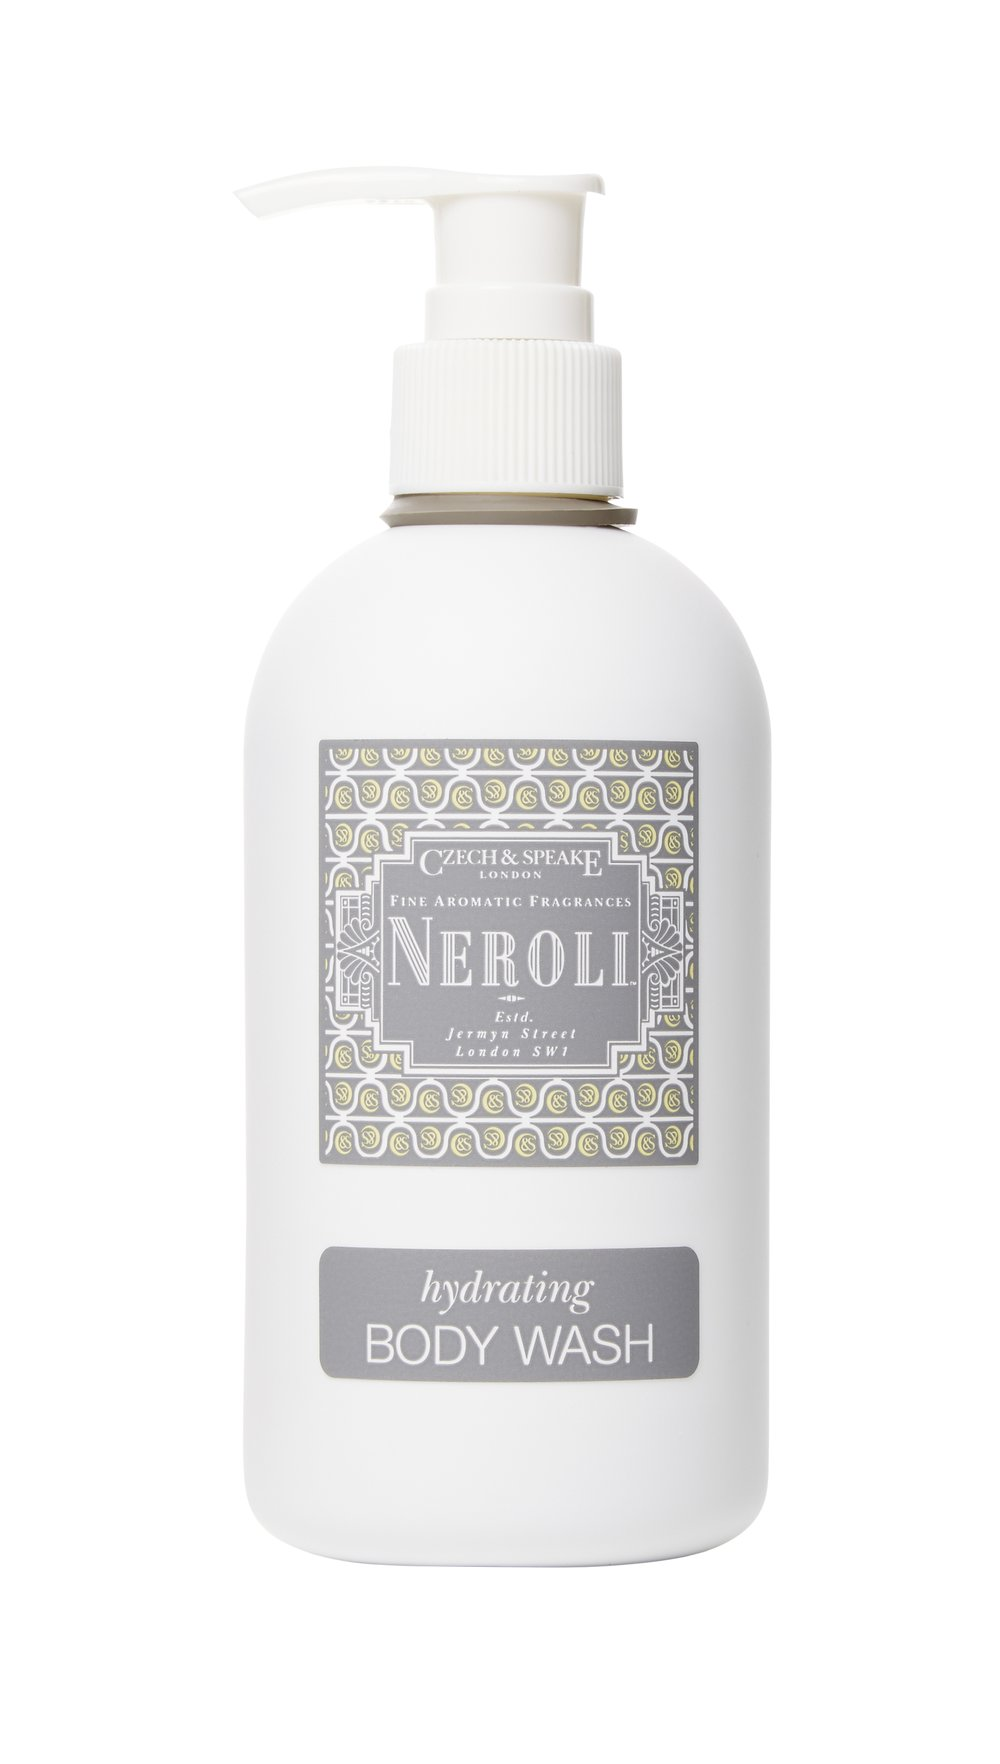 NW1300 Neroli Body Wash 300ml bottle pump 300dpi.jpg